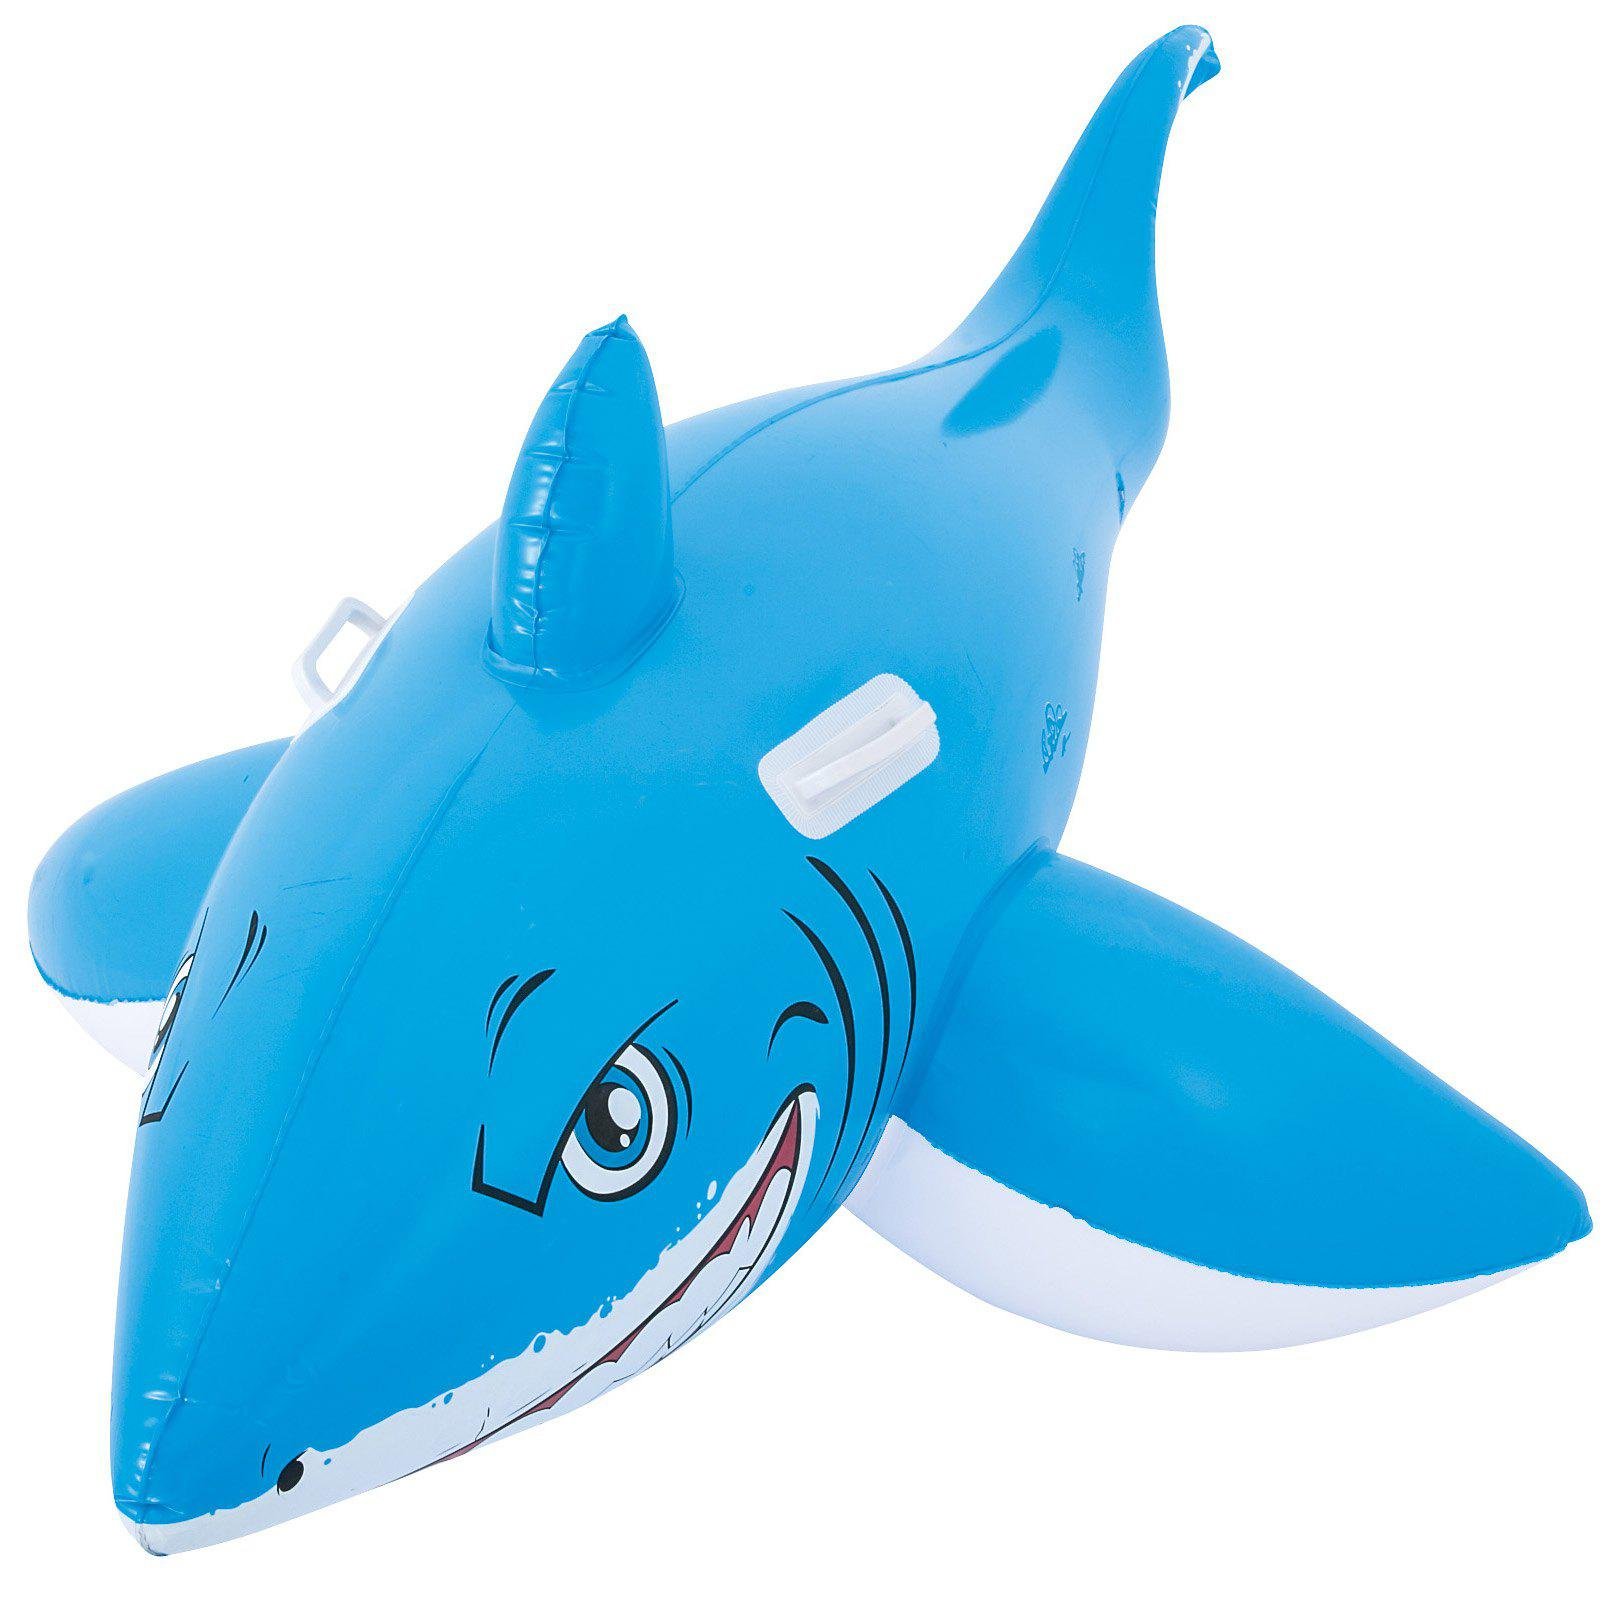 2019 Inflatable Shark Model Floating Ride On Toy With Handle ... b2b5bb87389f